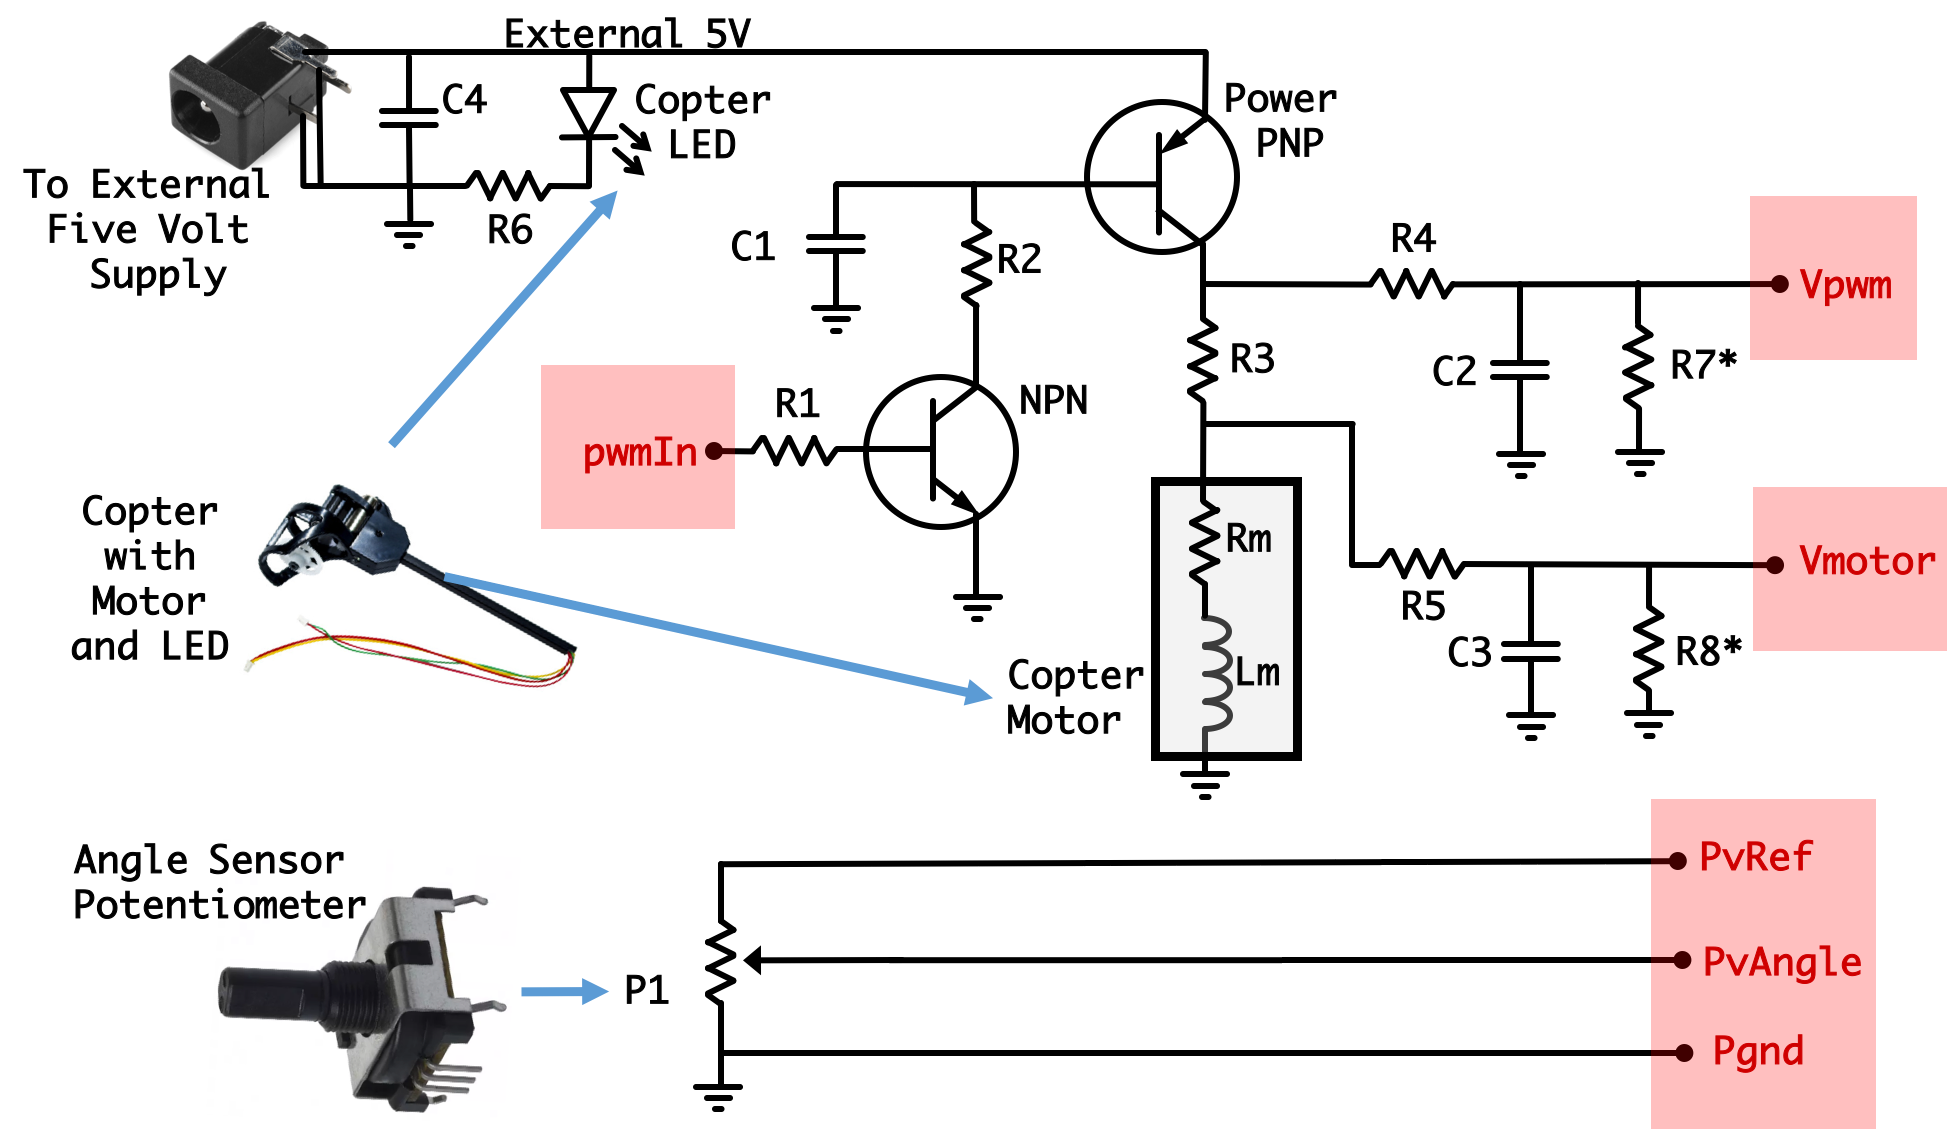 Lab01 Potentiometer Motor Wiring Diagram Based On What Your Microcontroller Is Were Assuming A Teensy 32 Friends Move Onto The Next Section To Discuss For Specific Board